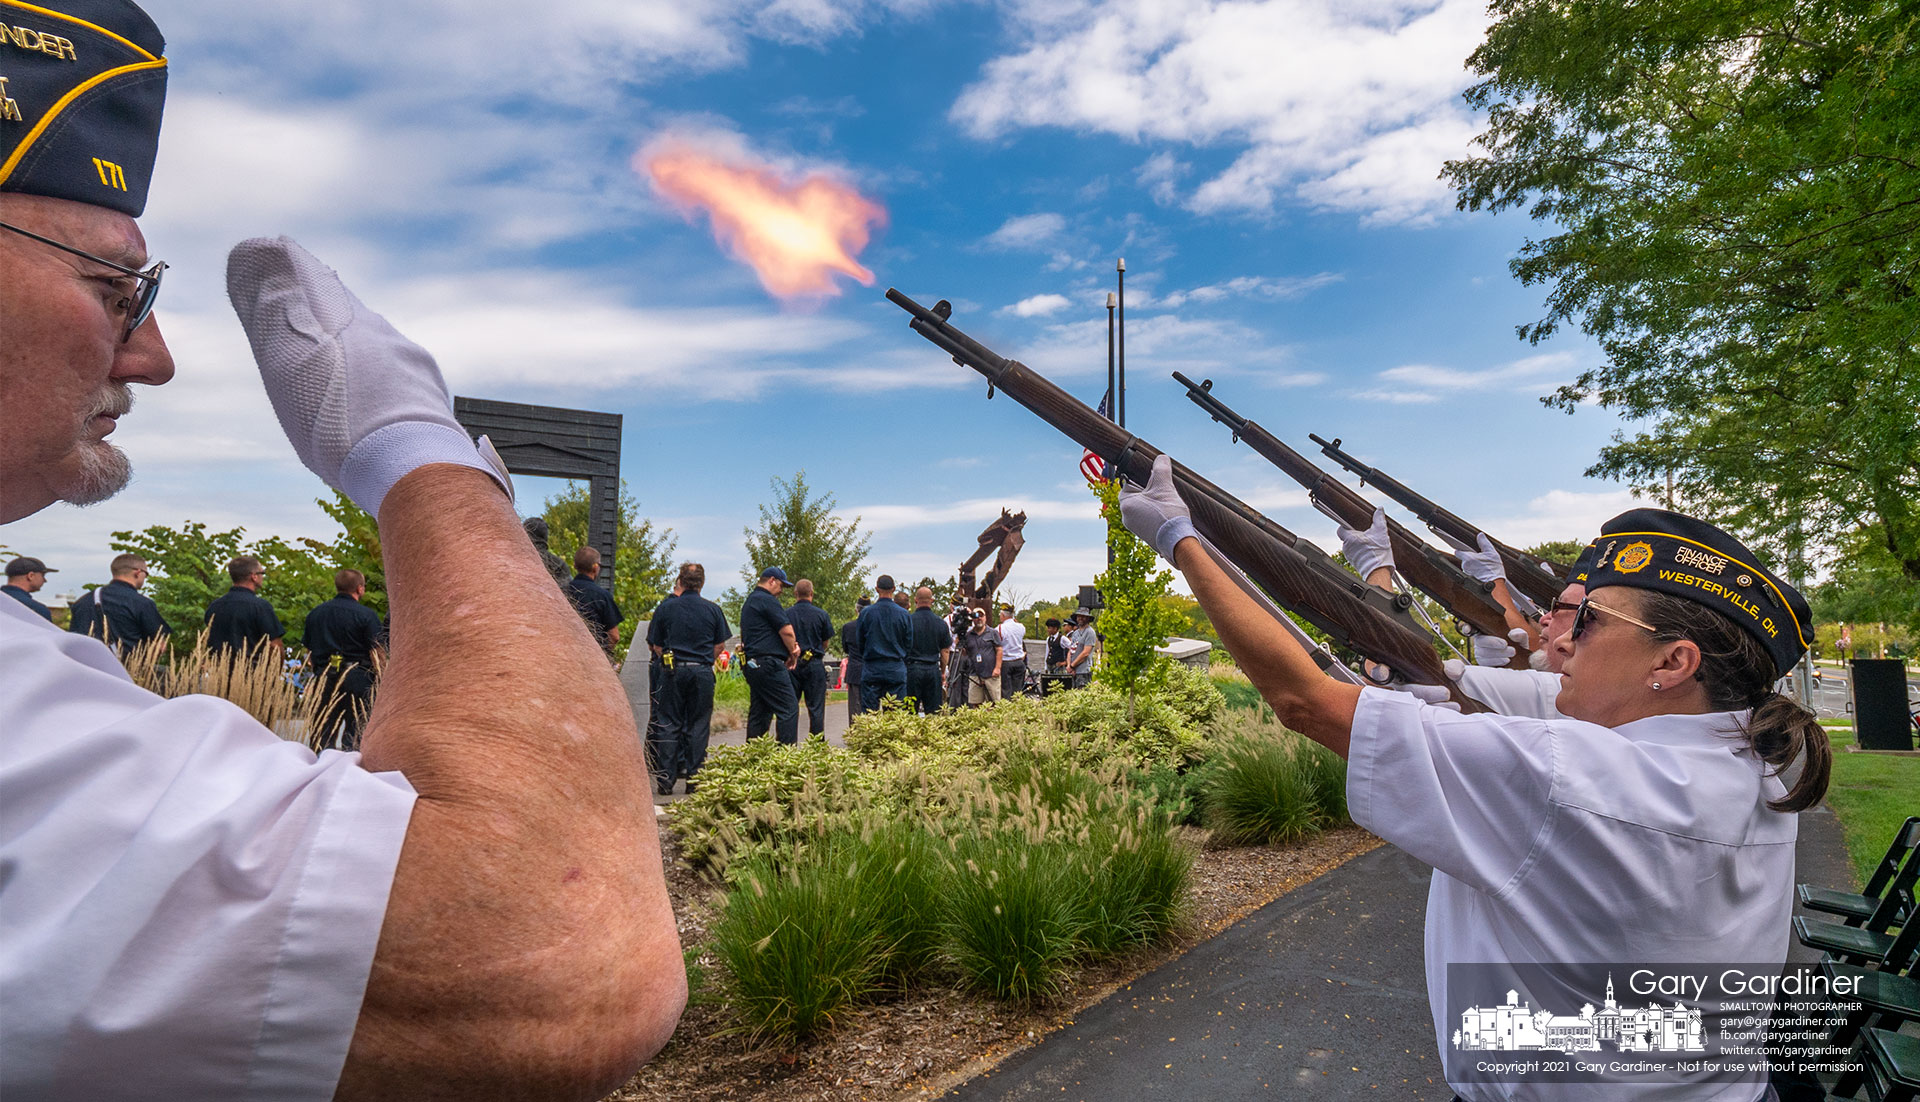 The American Legion Honor Guard fires a 21-gun salute at the end of noon ceremonies at First Responder's Park marking the 20th anniversary of the terrorist attacks in New York, Washing, and Pennsylvania. My Final Photo for Sept. 11. 2021.